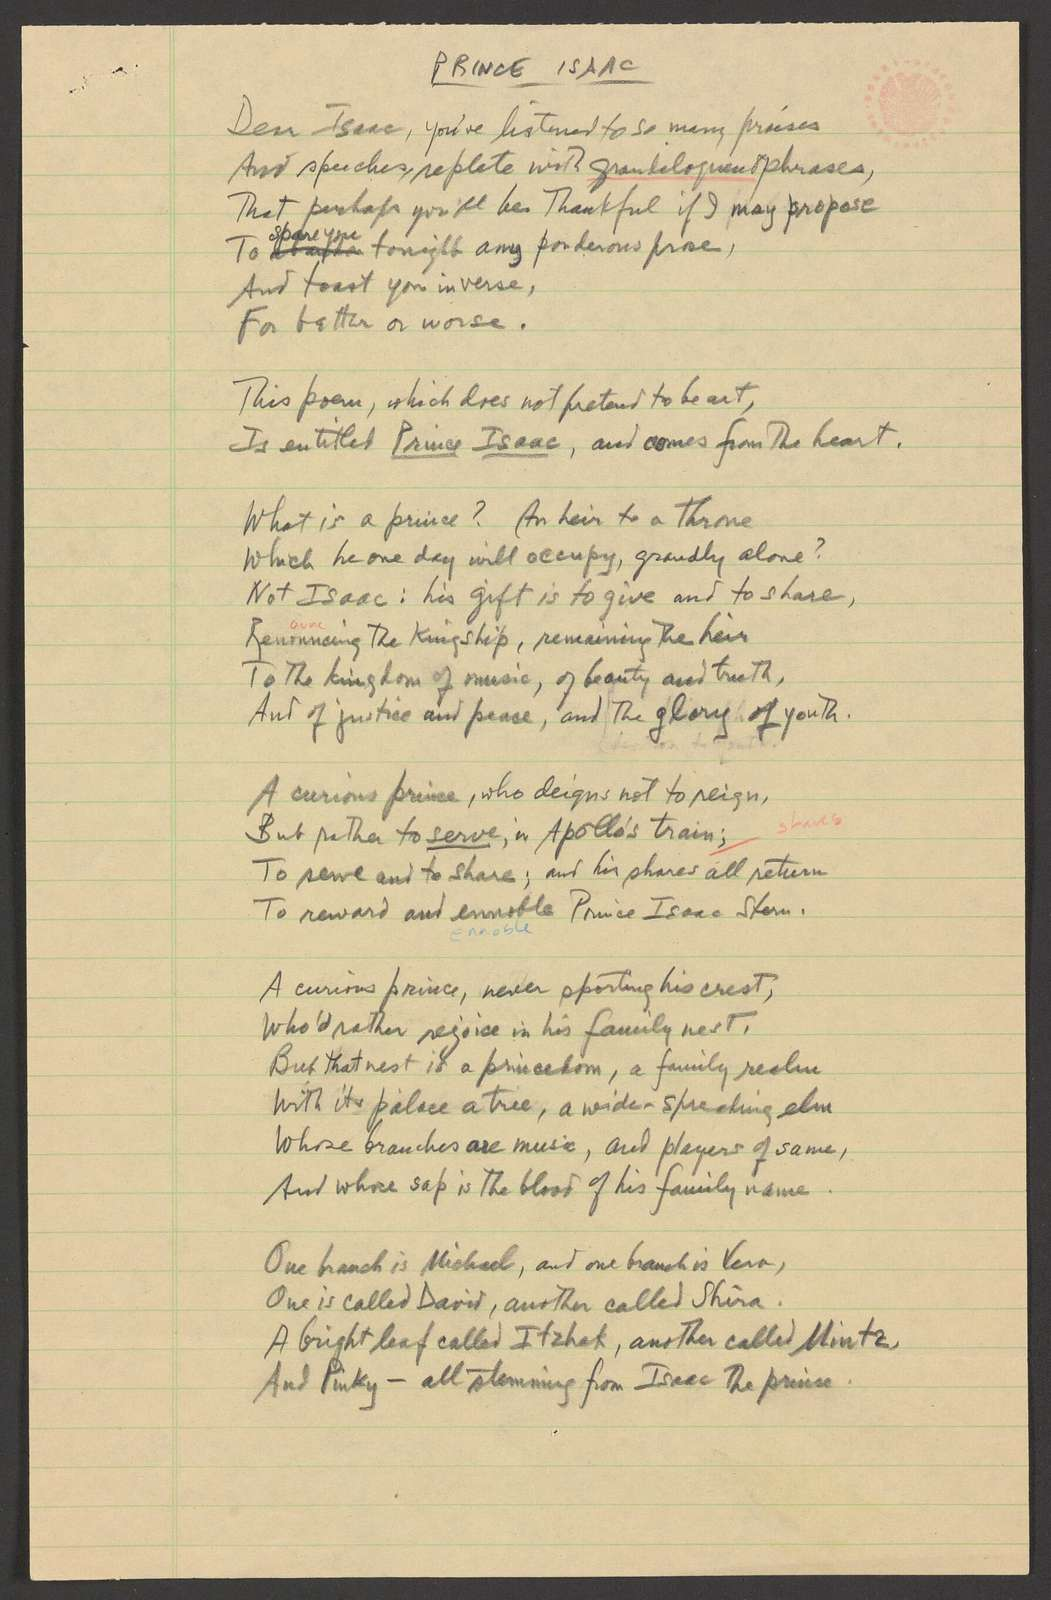 Prince Isaac poem, for Isaac Stern's 60th birthday, 1980 Dec. 3